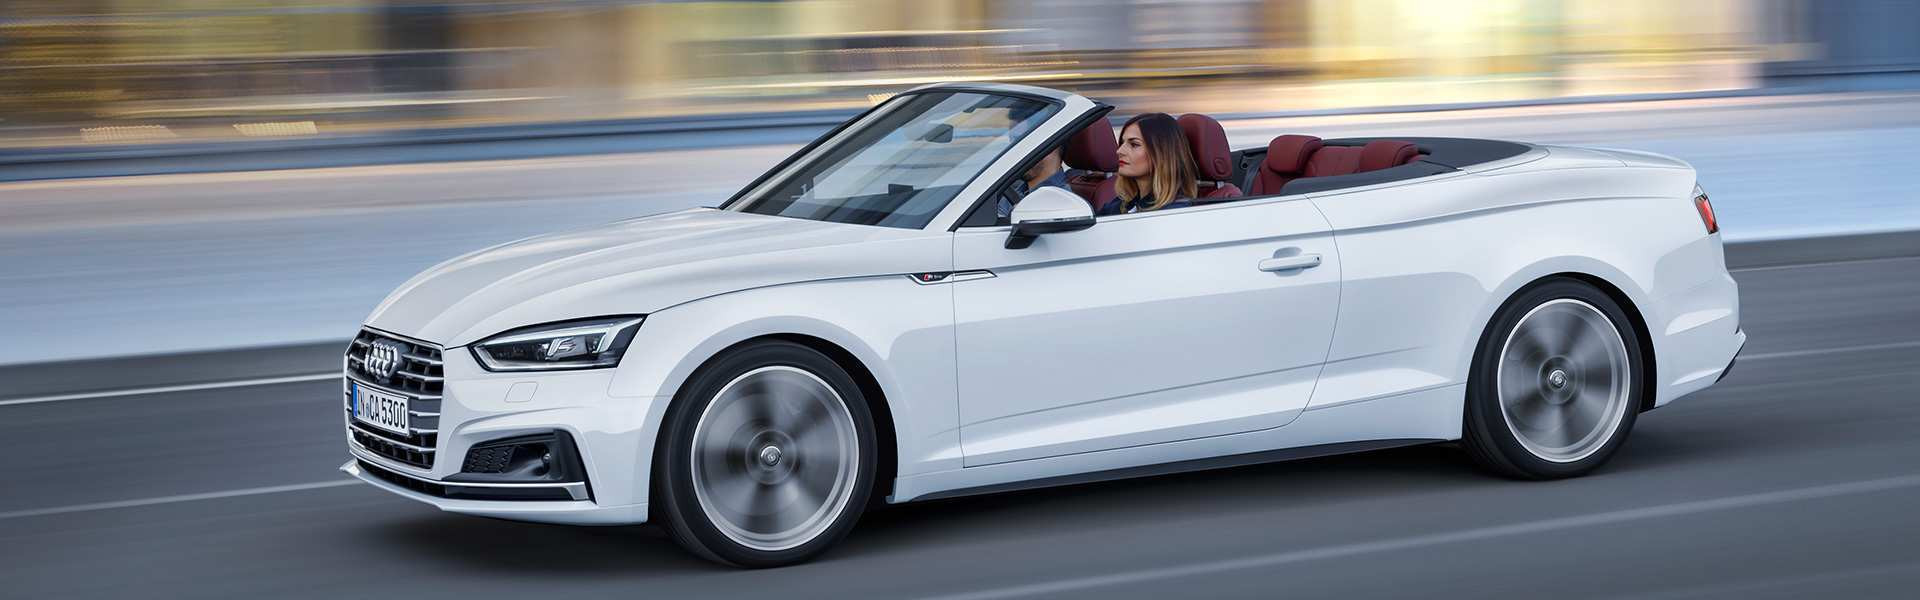 76 All New 2019 Audi A5s Release Date